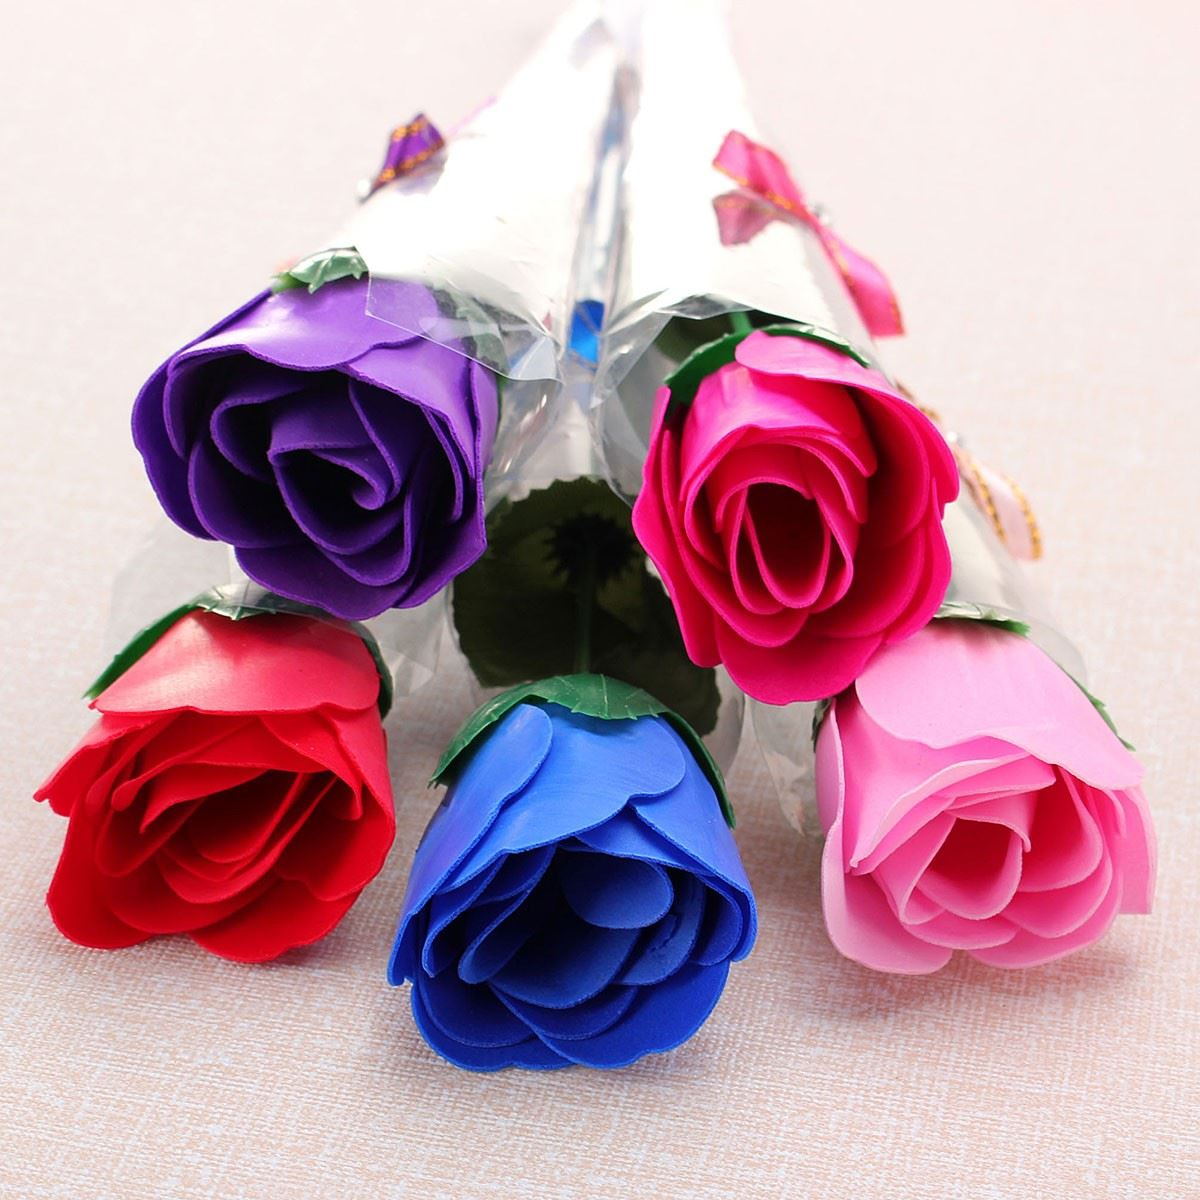 Artificial Handmade Rose Colourful Wedding Party Decoration C-reative Valentine Romantic Birthday Gifts To Girlfriend 10Pcs(China (Mainland))